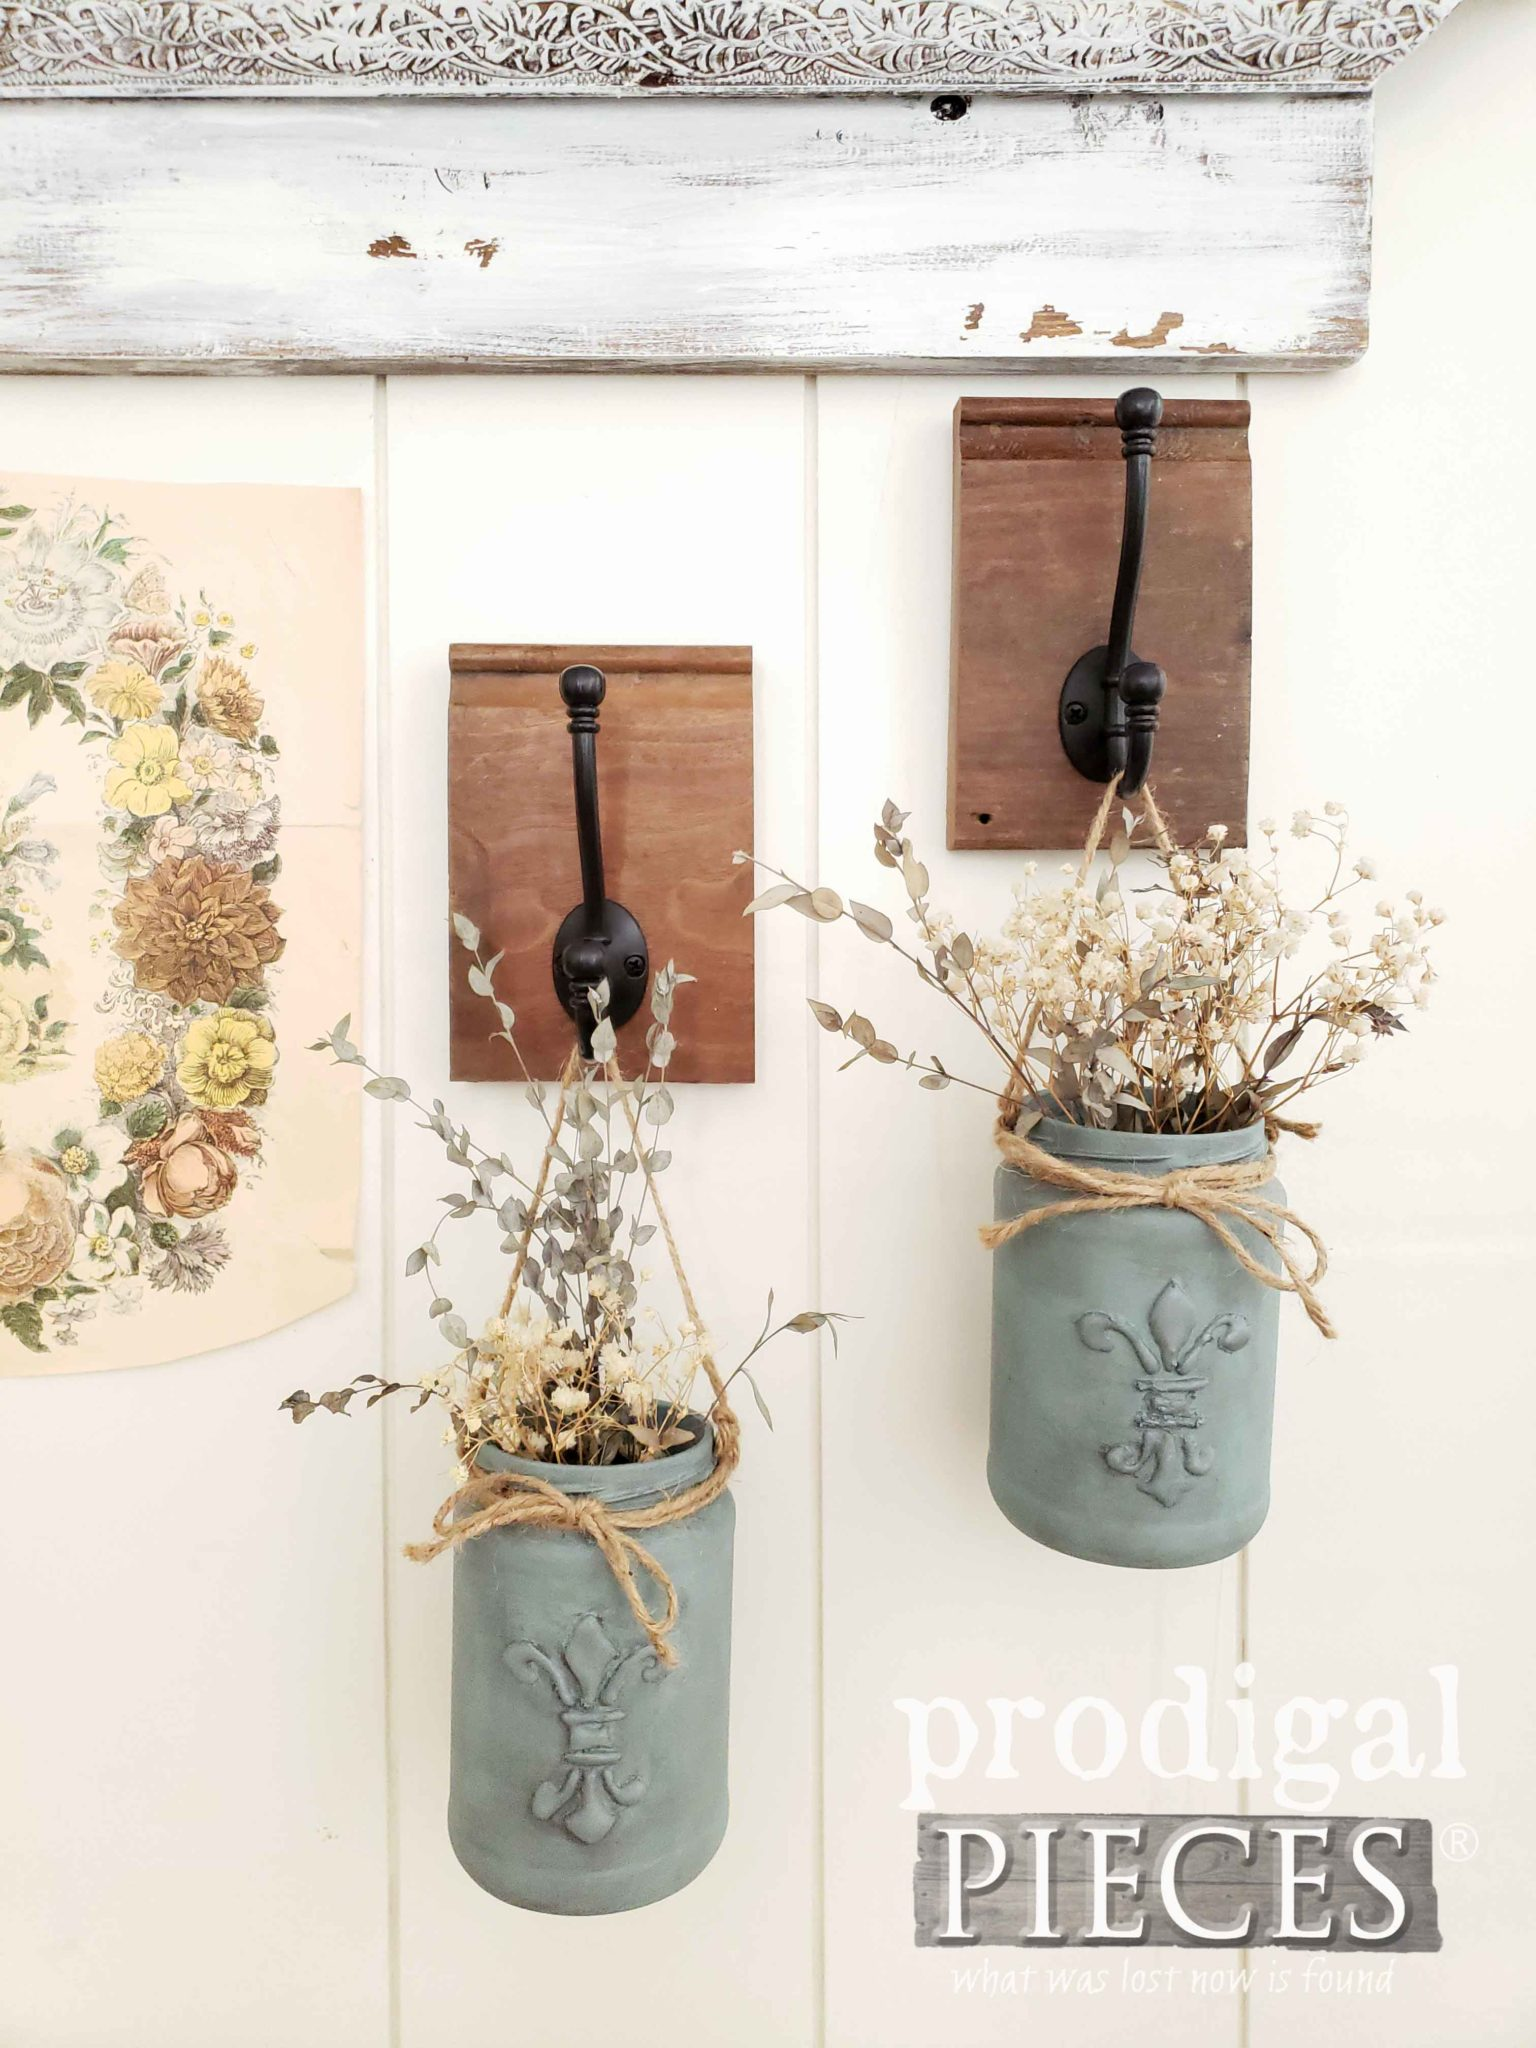 DIY Upcycled Jar Hangers Made from Repurposed Finds by Larissa of Prodigal Pieces | prodigalpieces.com